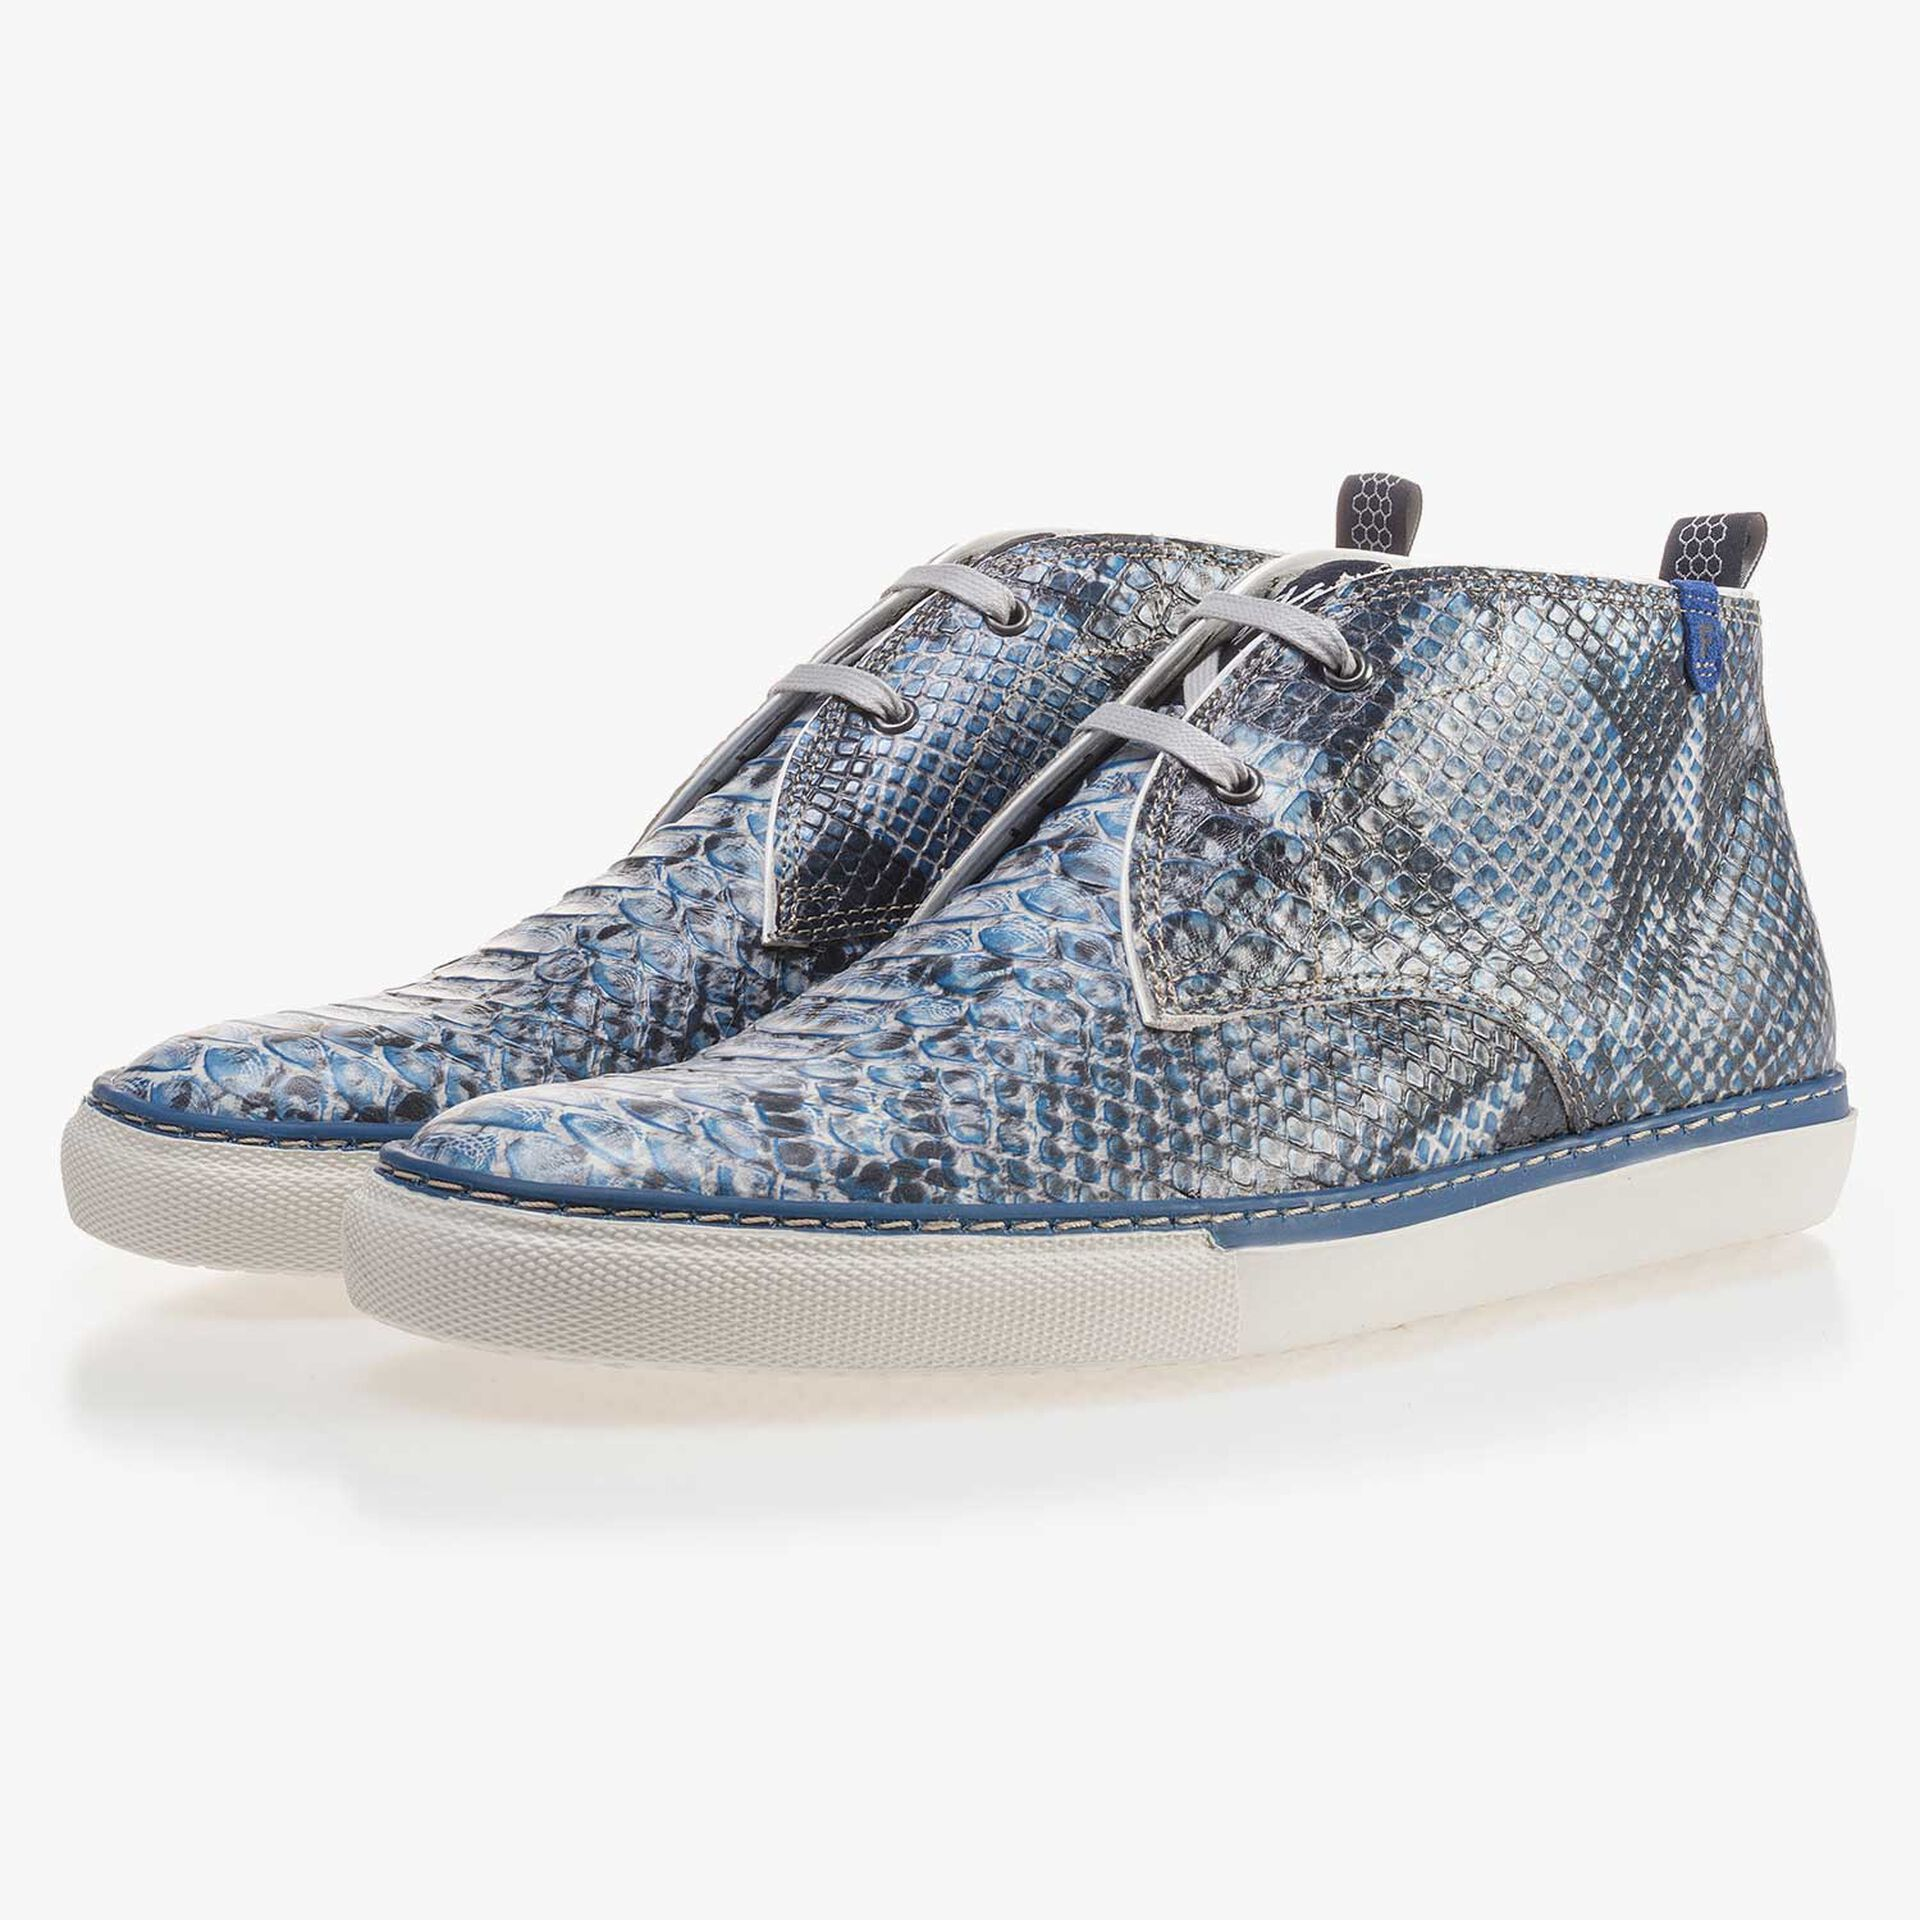 Blue calf's leather lace boot with a snake pattern